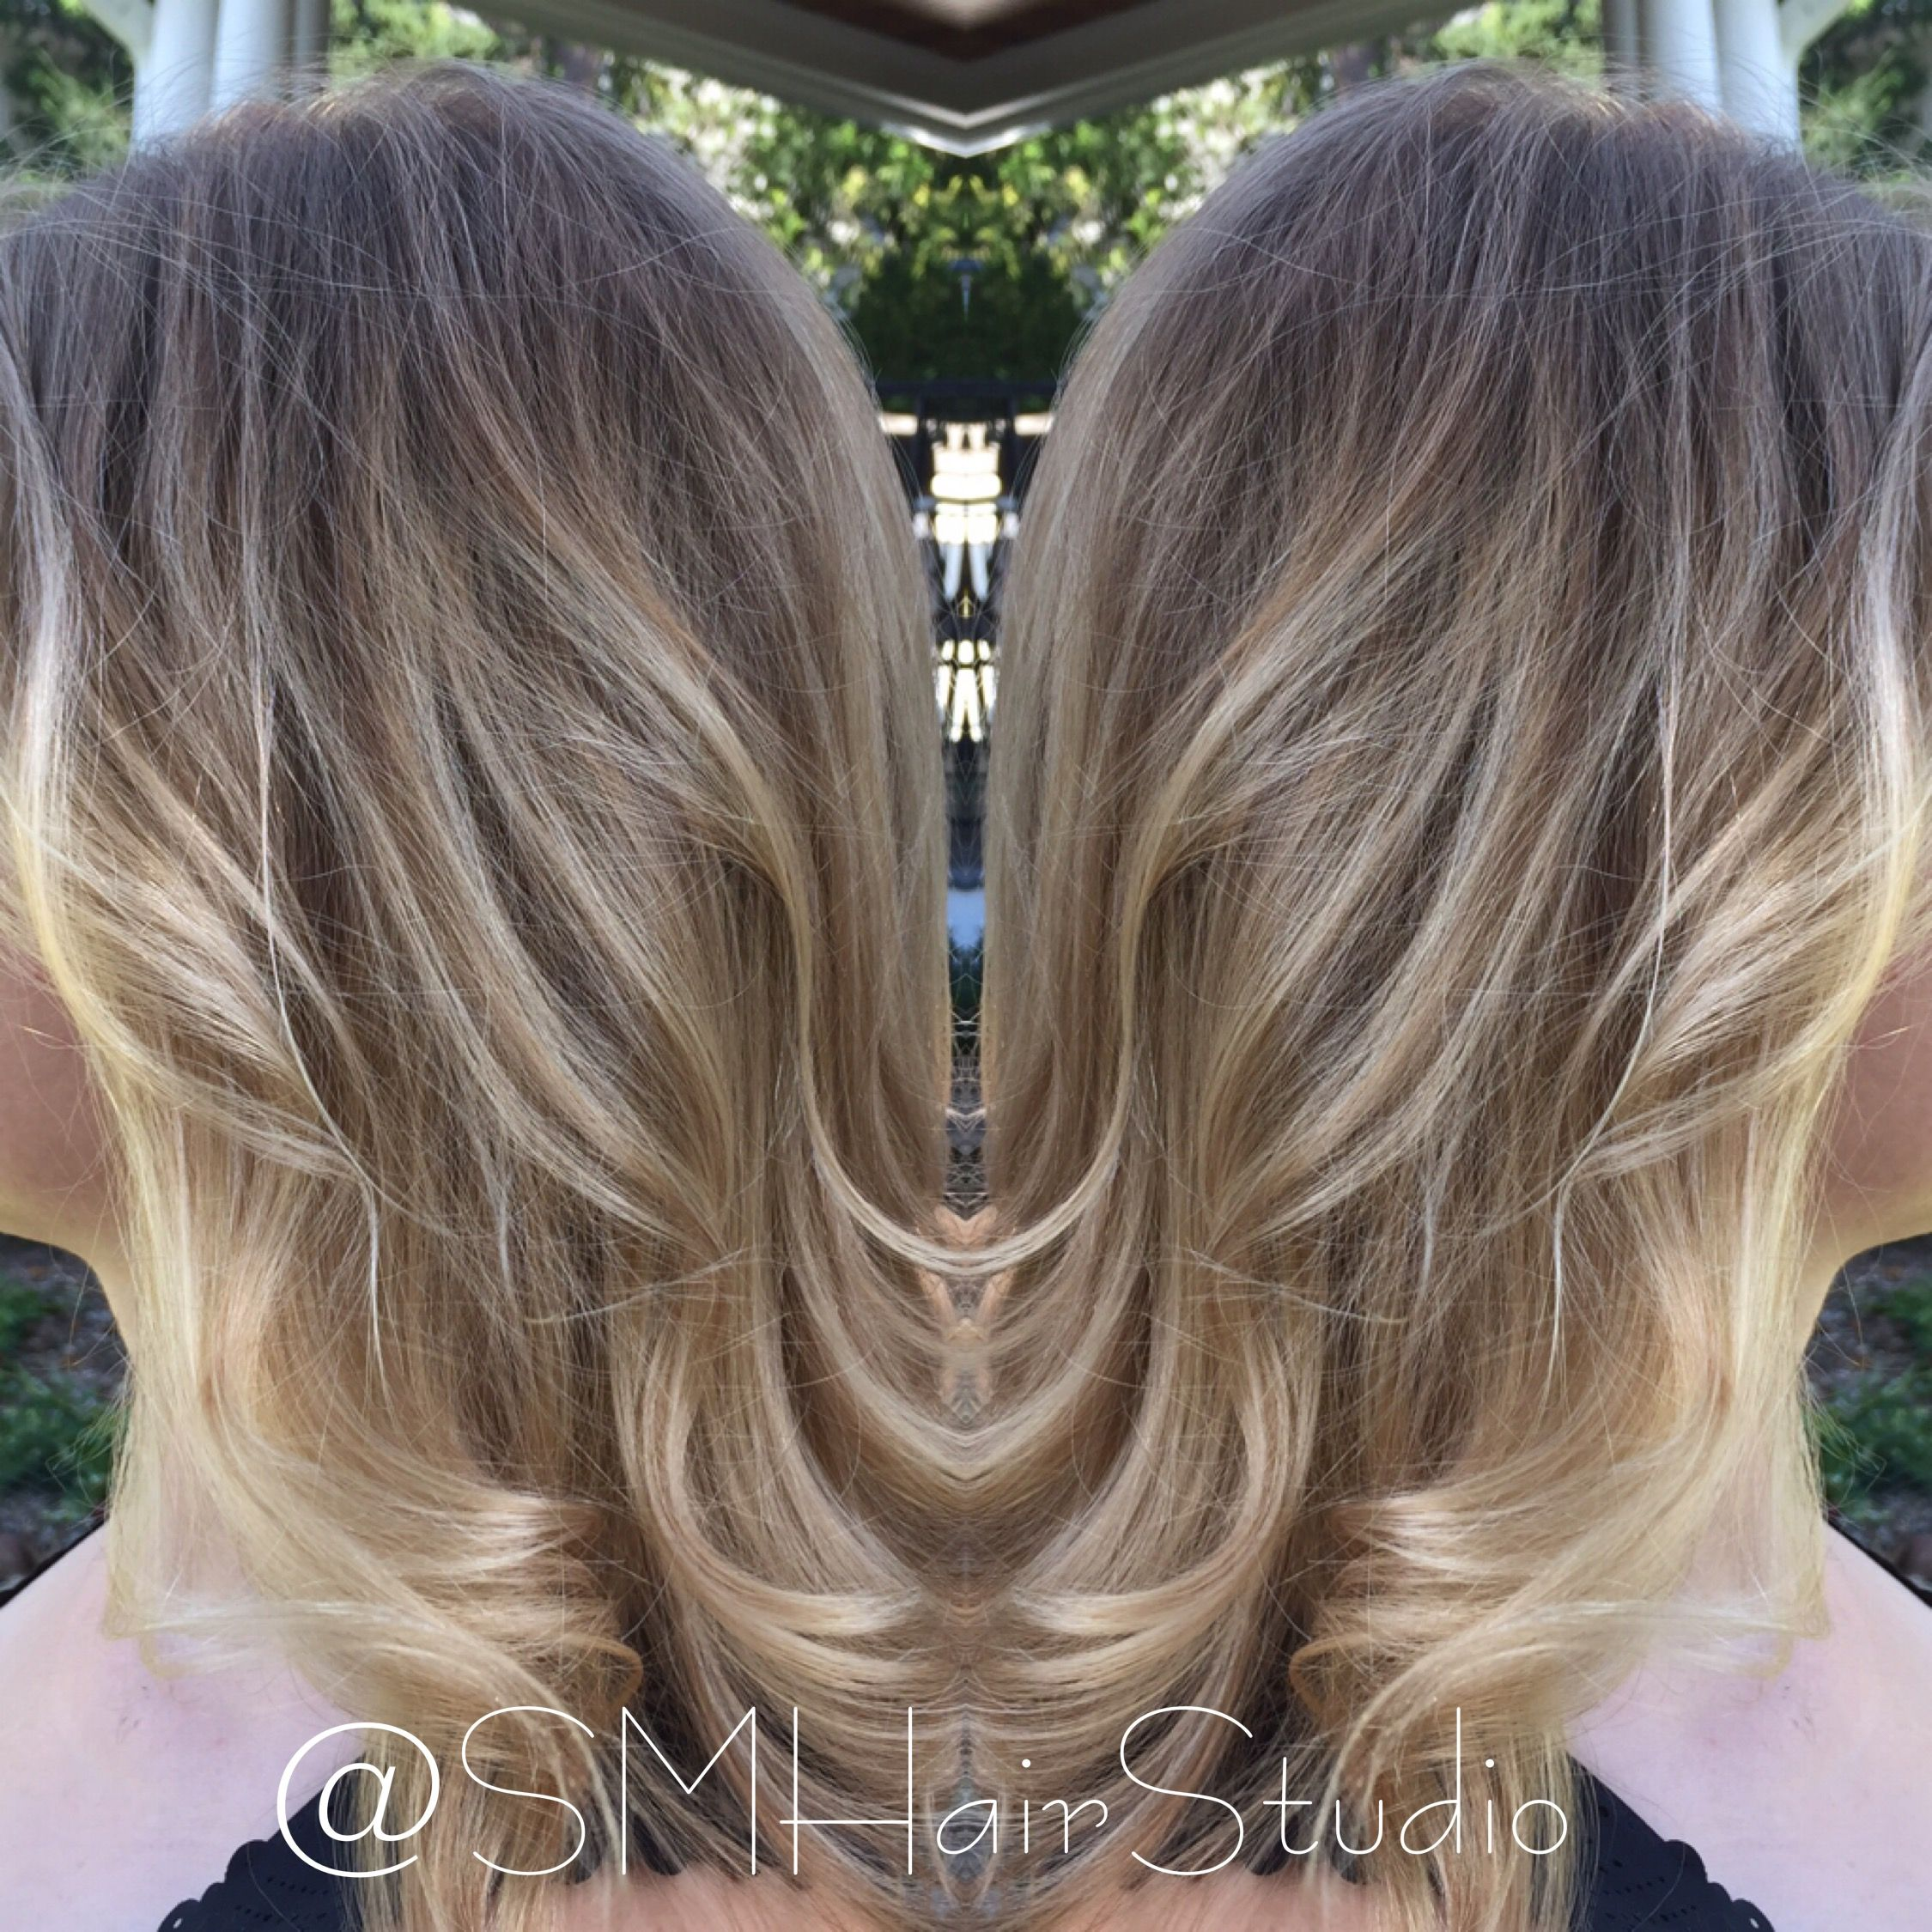 balayage over body wave perm with olaplex | my work | pinterest